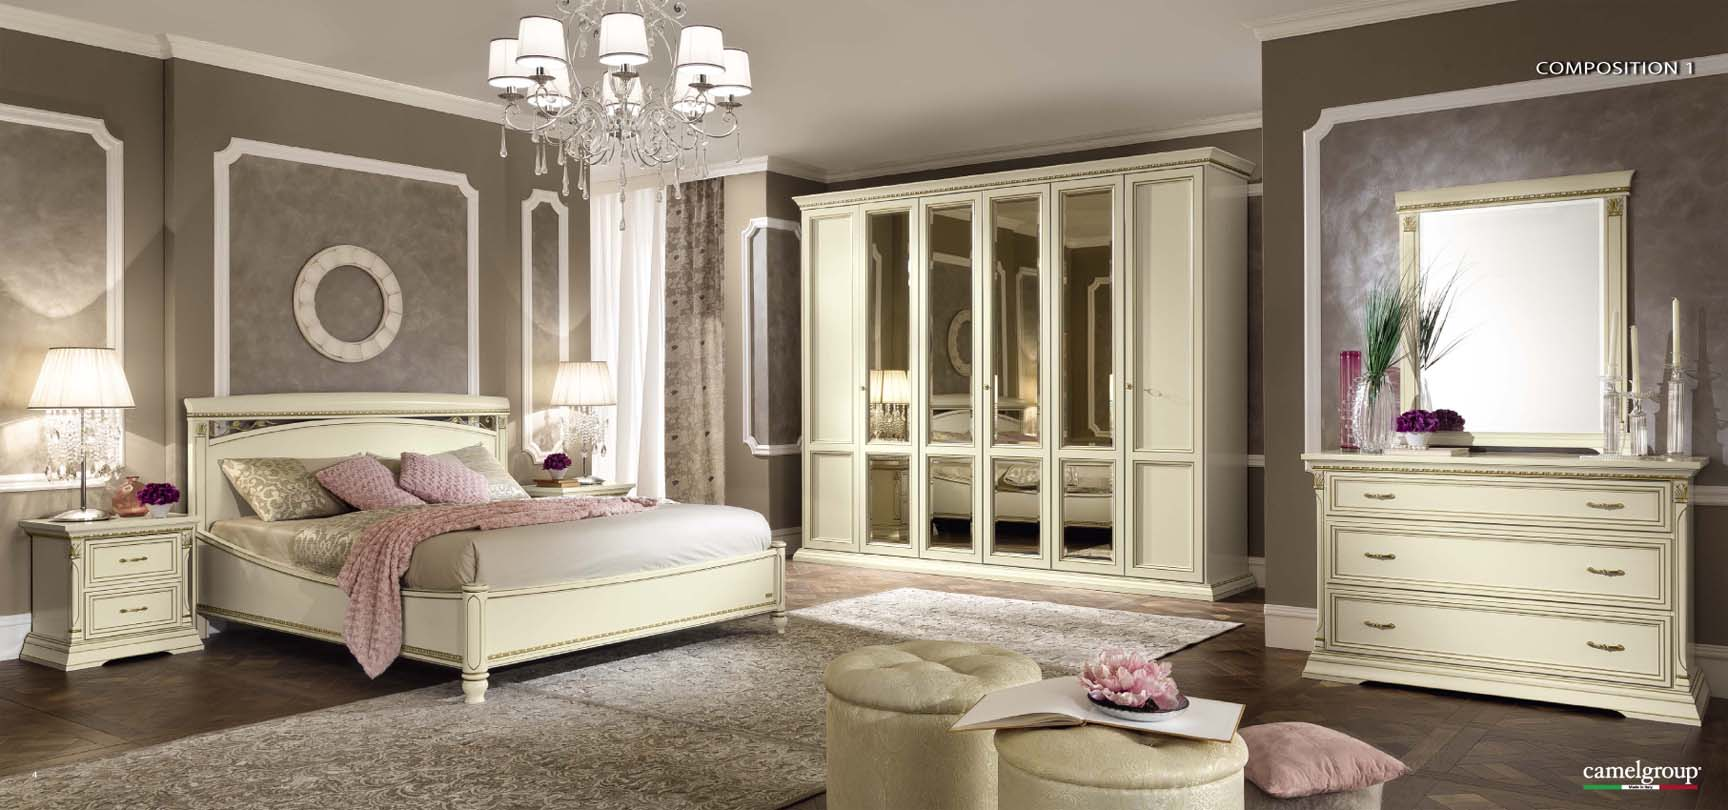 Brands Camel Traditional Collection, Italy Treviso Night Composition 1 in White Ash